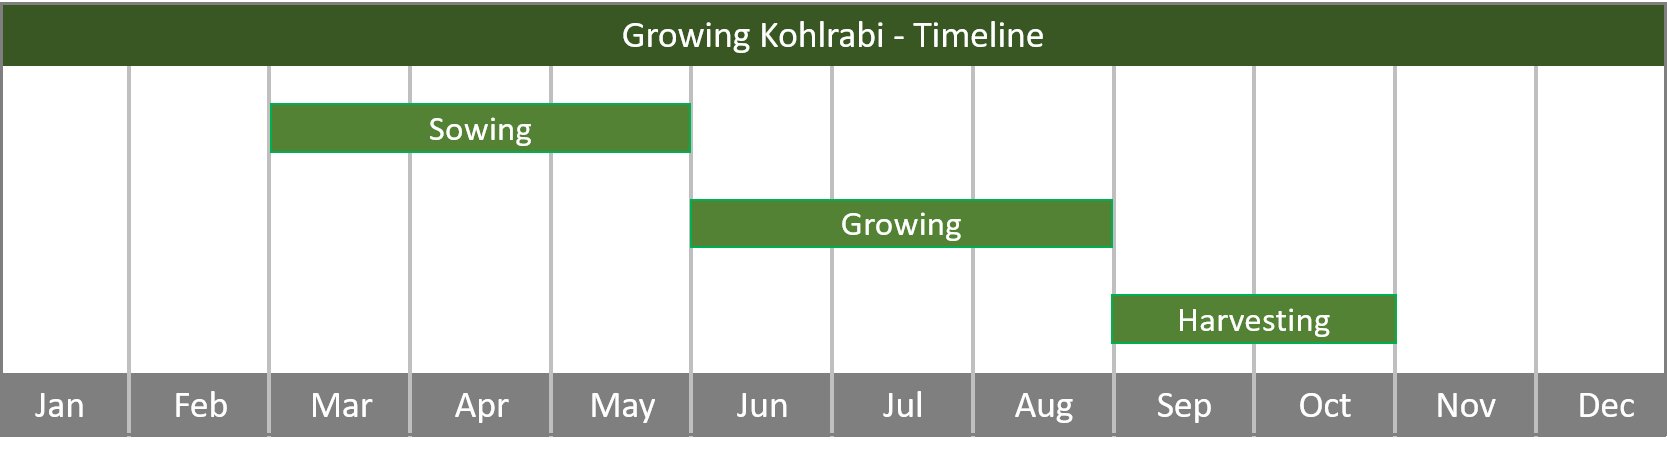 how to grow kohlrabi from seed to harvest at home timeline